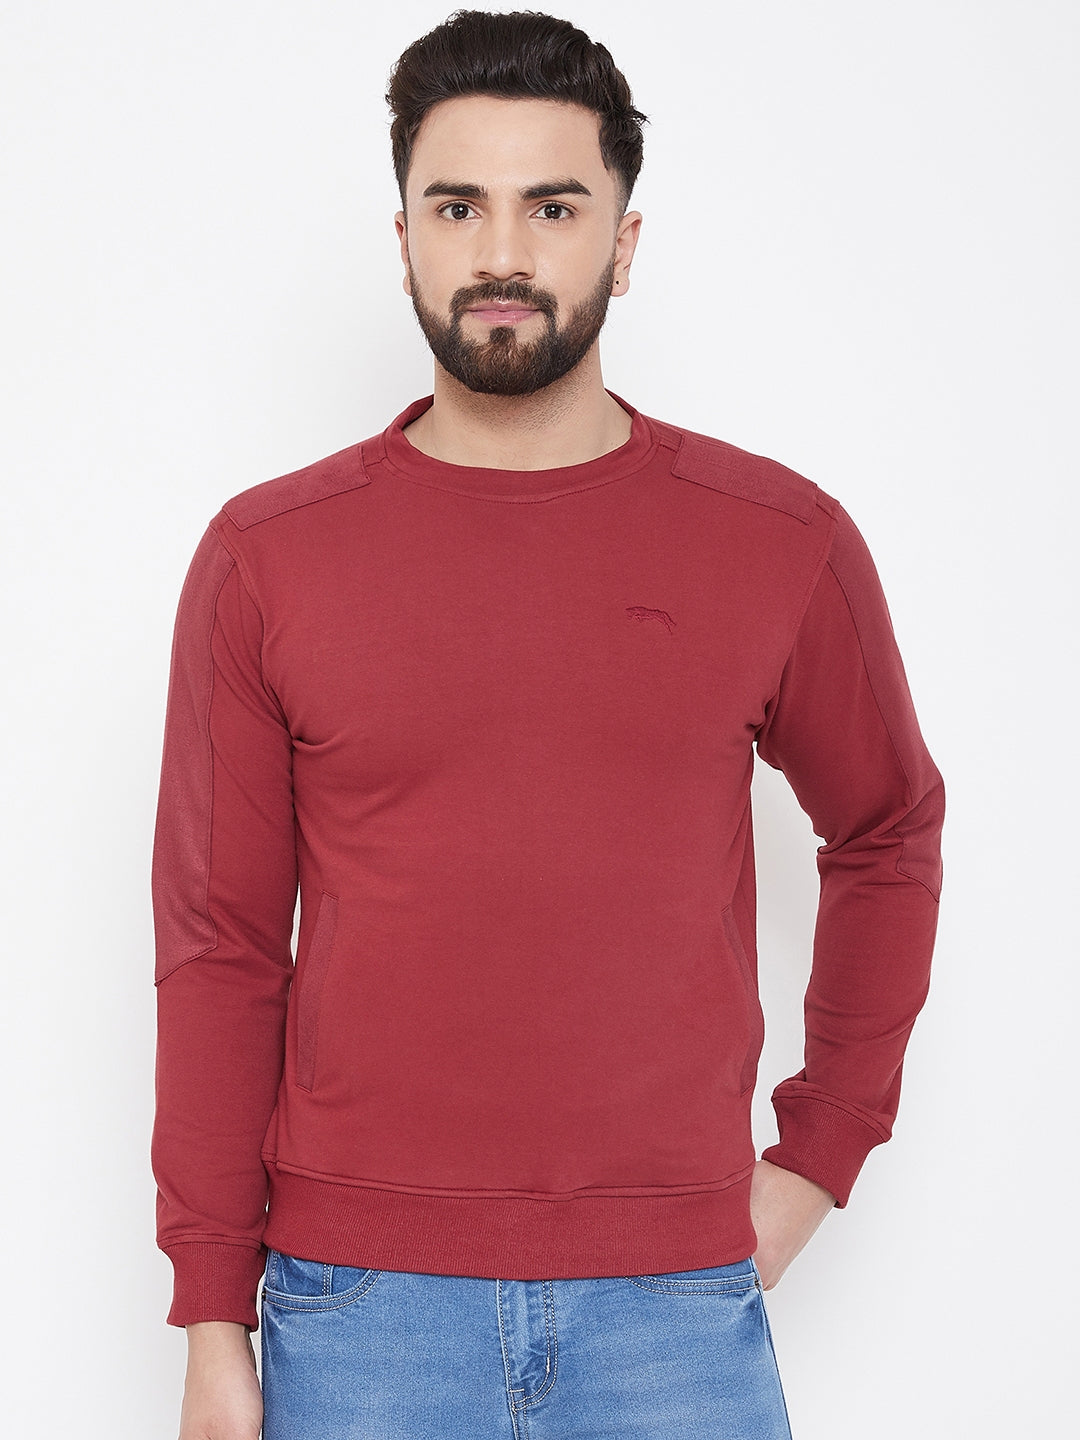 JUMP USA Men Red Solid Sweatshirt